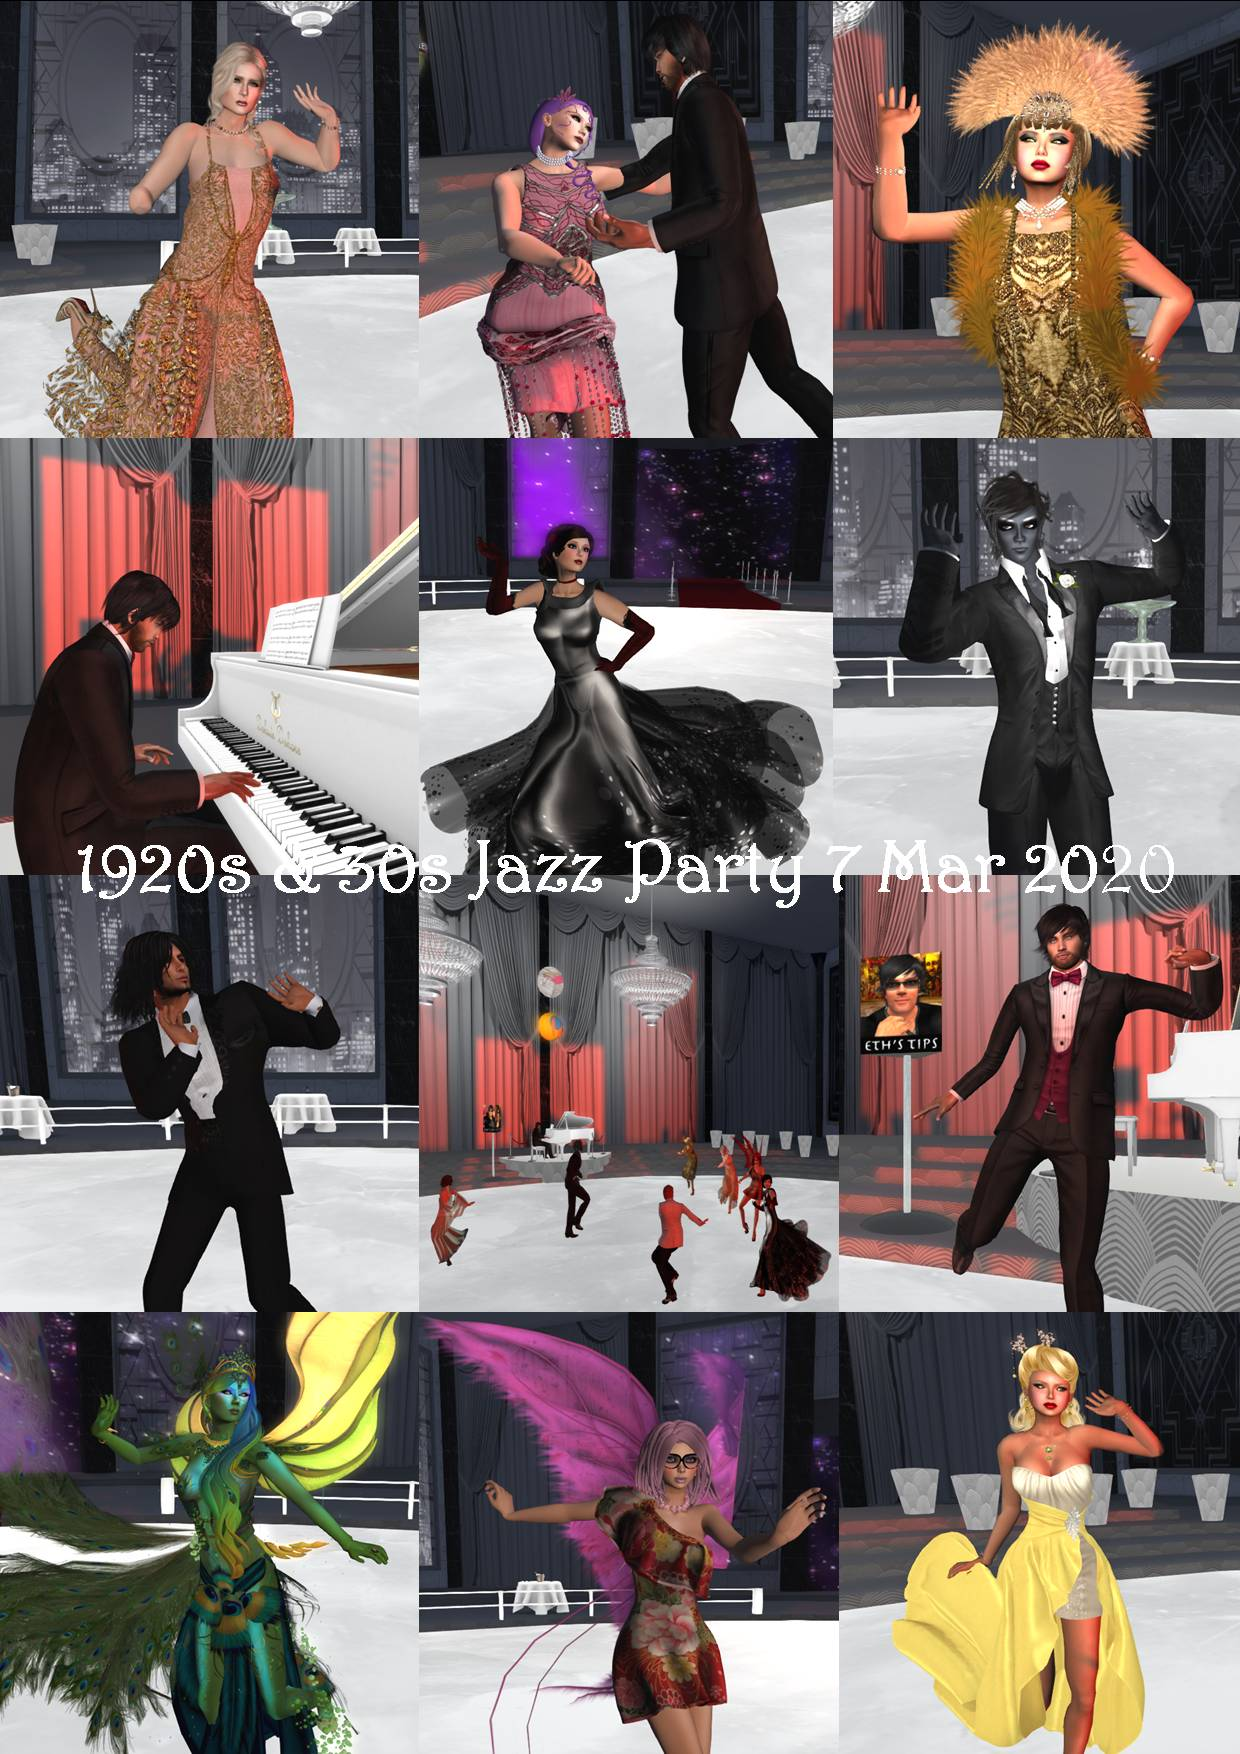 1920s & 30s JAZZ PARTY COLLAGE 7 MAR 2020